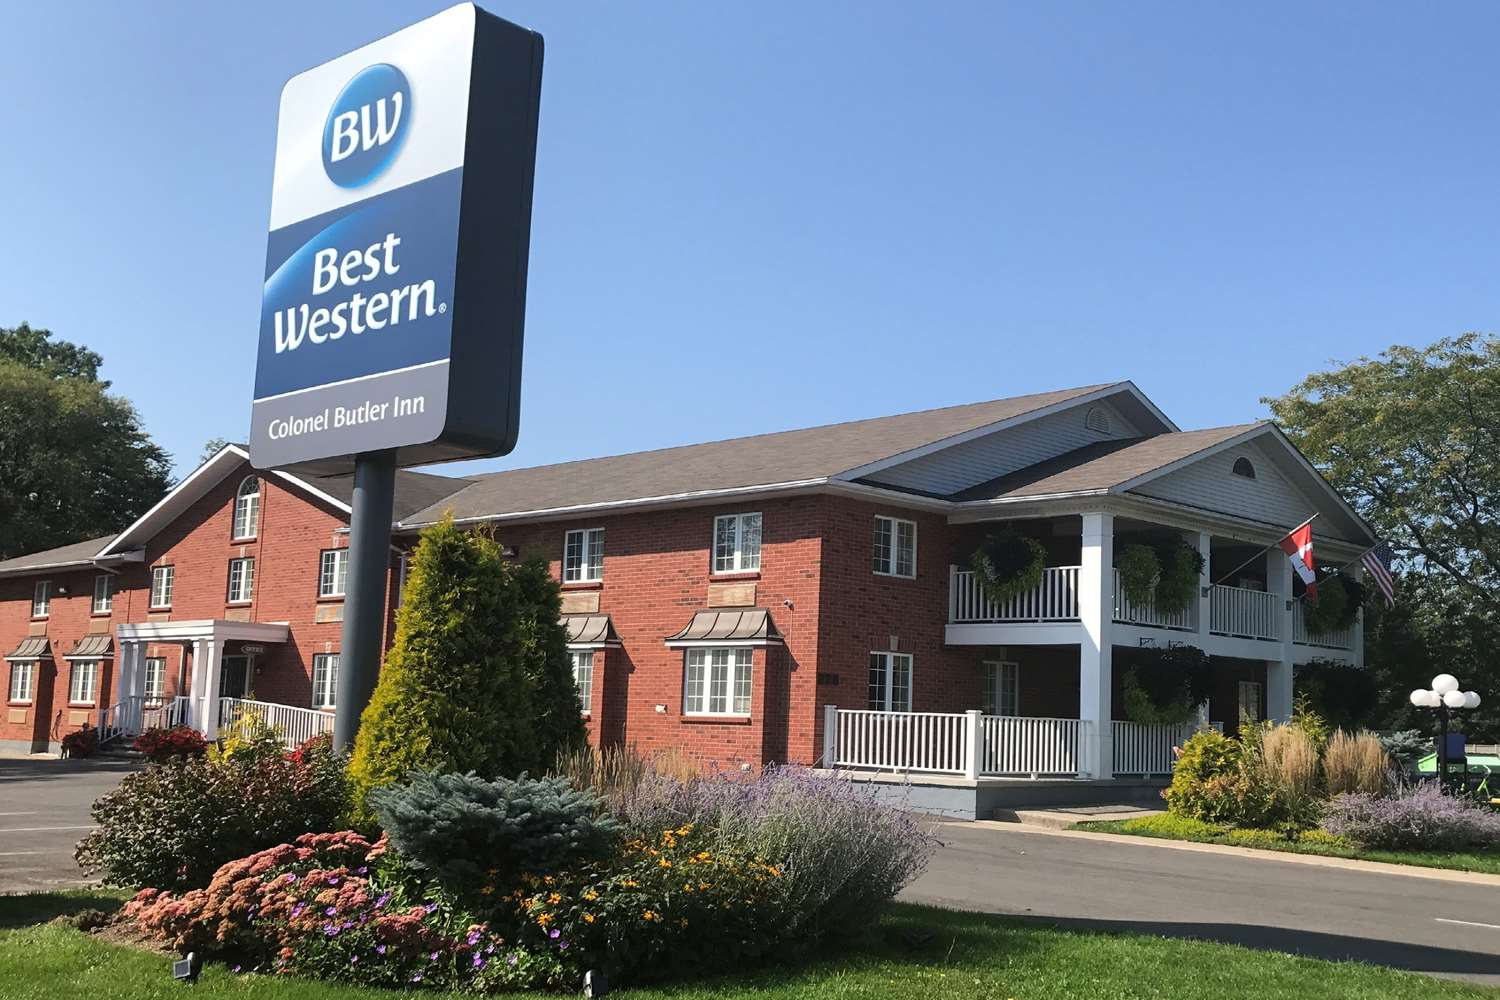 Exterior view - Best Western Colonel Butler Inn Niagara on the Lake